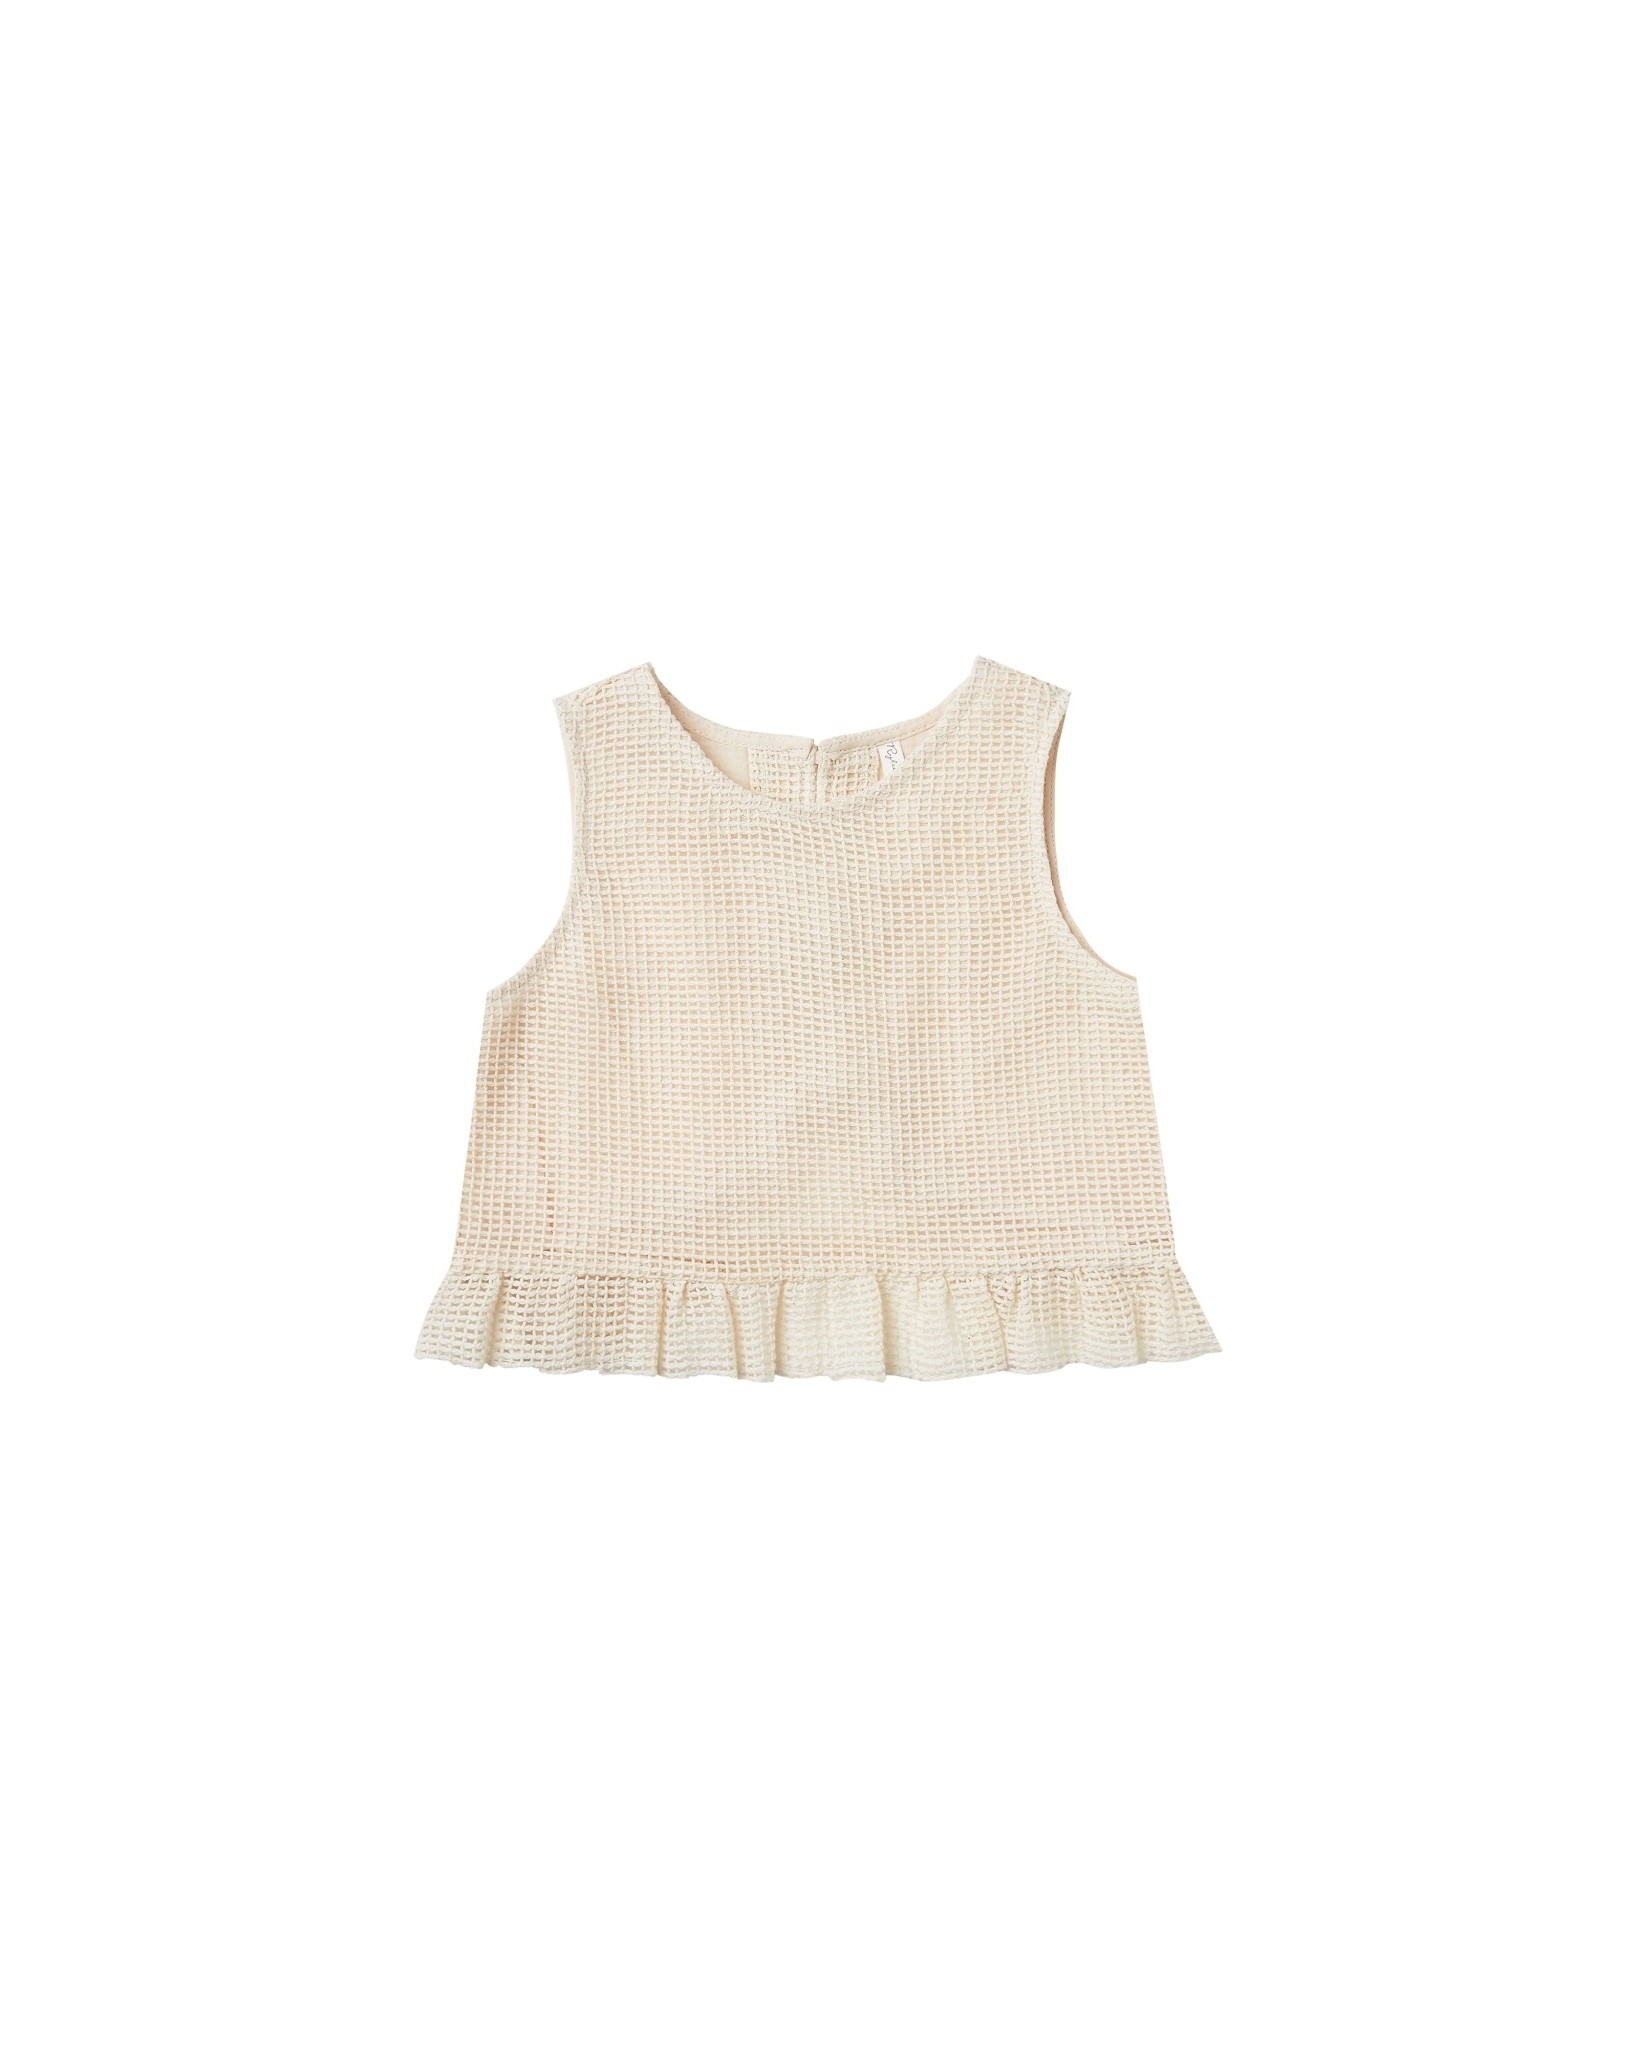 RYLEE AND CRU Leonie Top